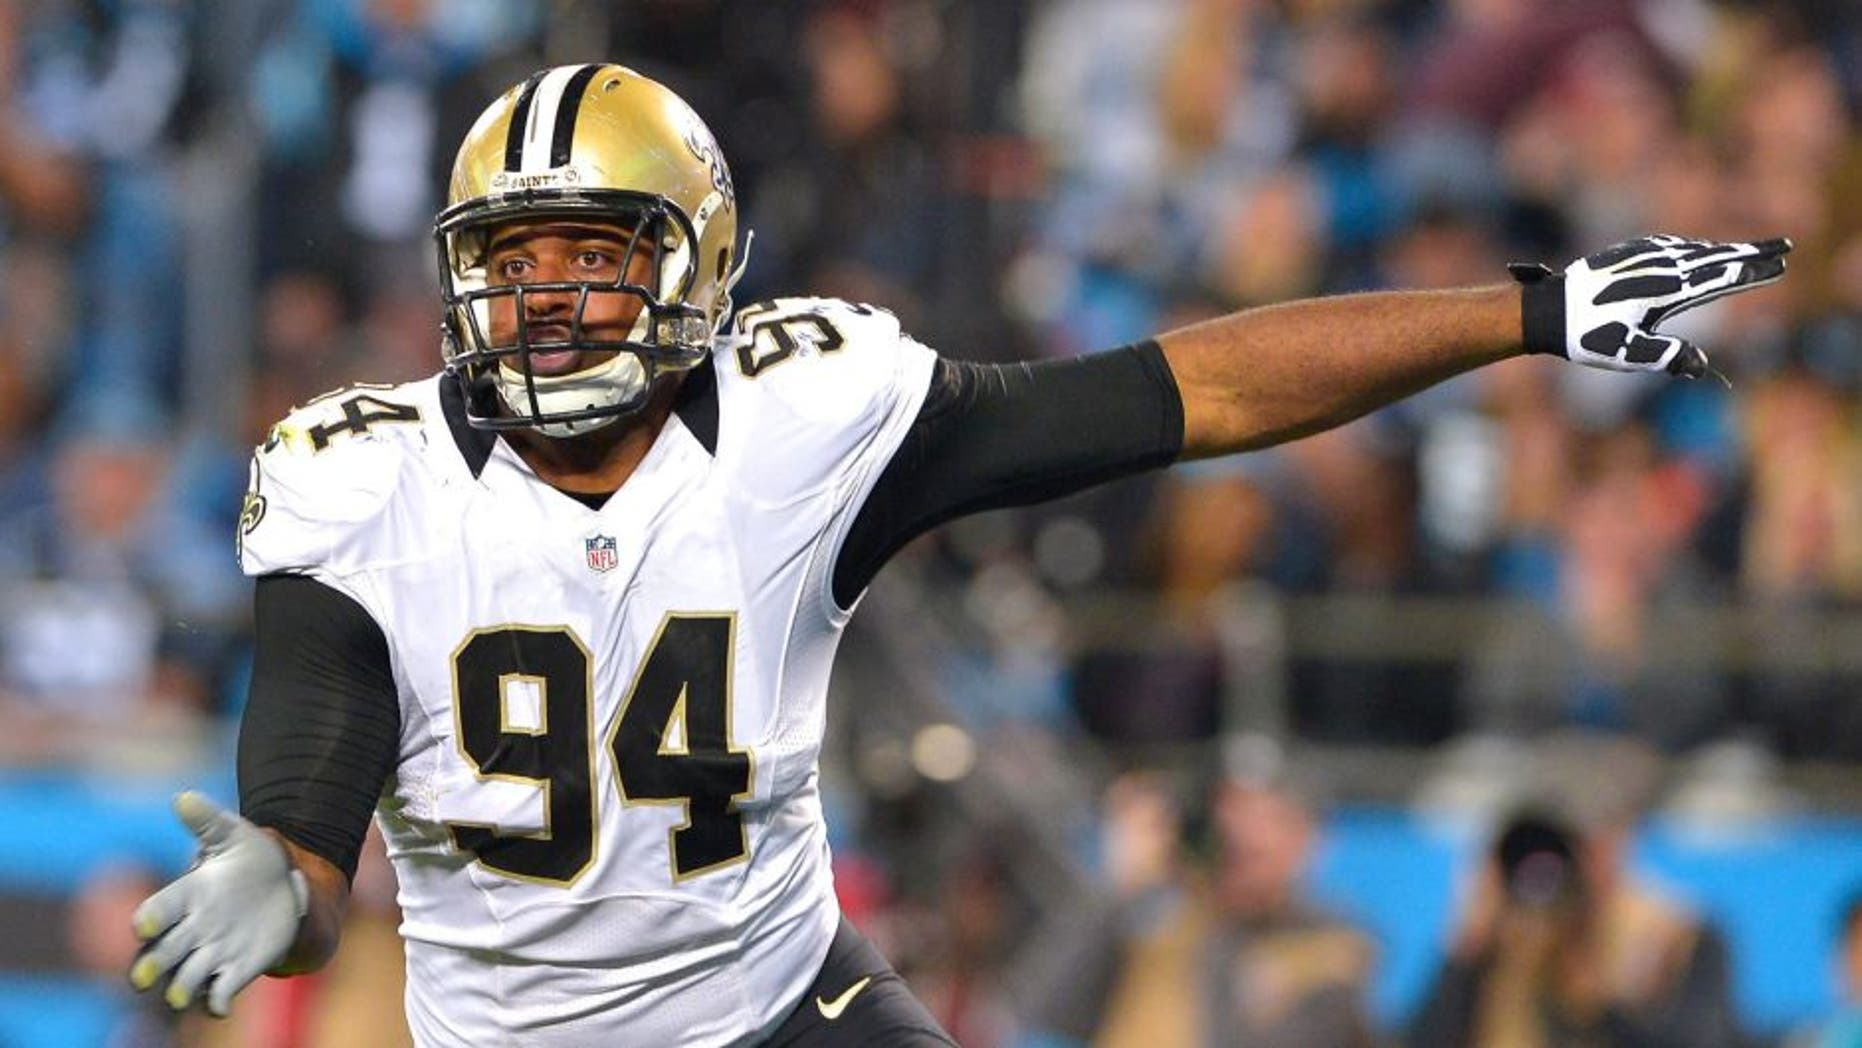 CHARLOTTE, NC - OCTOBER 30: Cameron Jordan #94 of the New Orleans Saints pass rushes against the Carolina Panthers during their game at Bank of America Stadium on October 30, 2014 in Charlotte, North Carolina. The Saints won 28-10. (Photo by Grant Halverson/Getty Images)